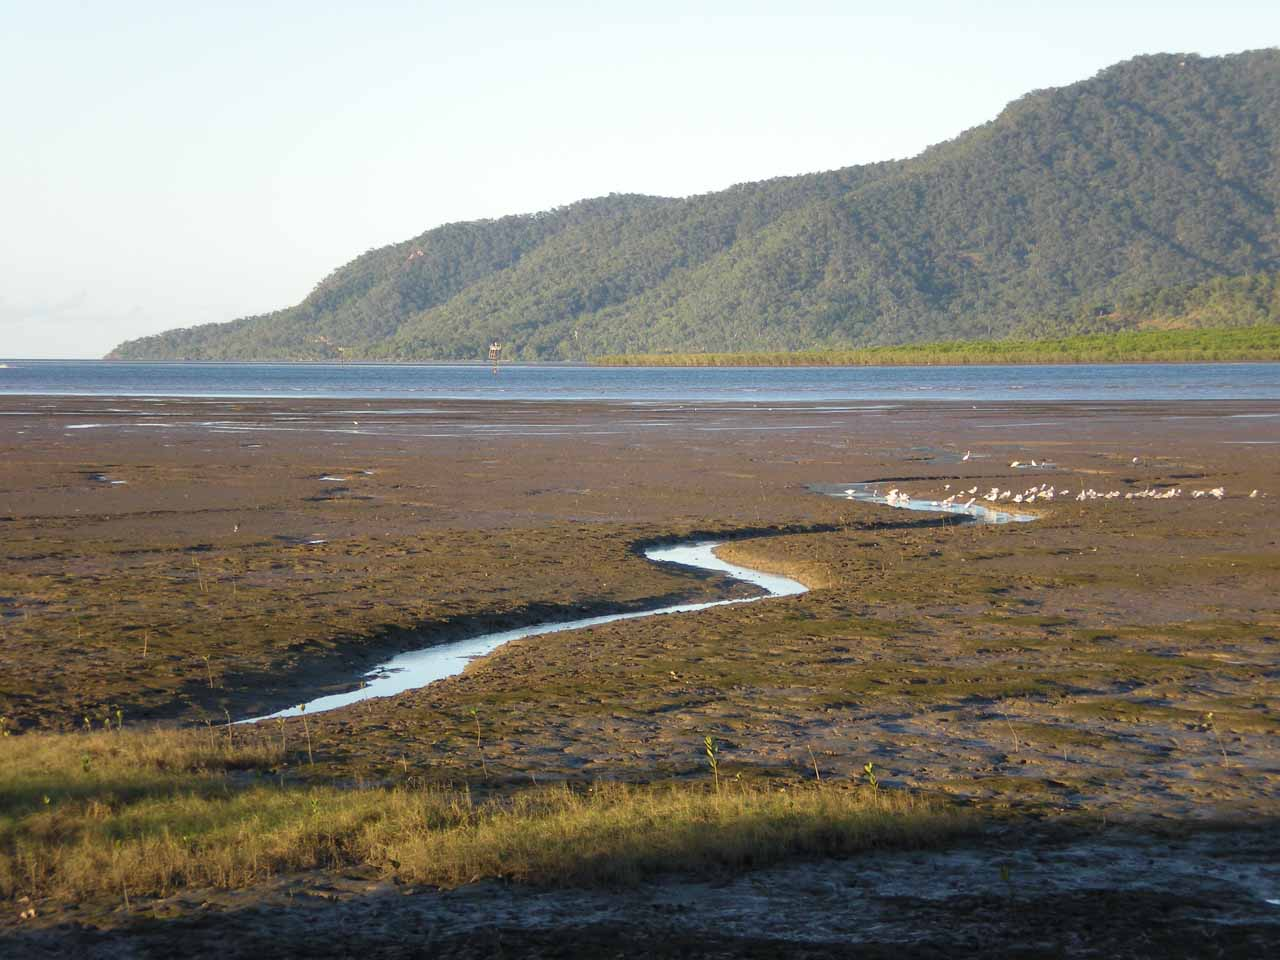 When we were walking back from the railway station in Cairns, we noticed it was low tide as we were looking out towards the Ocean from the Cairns CBD